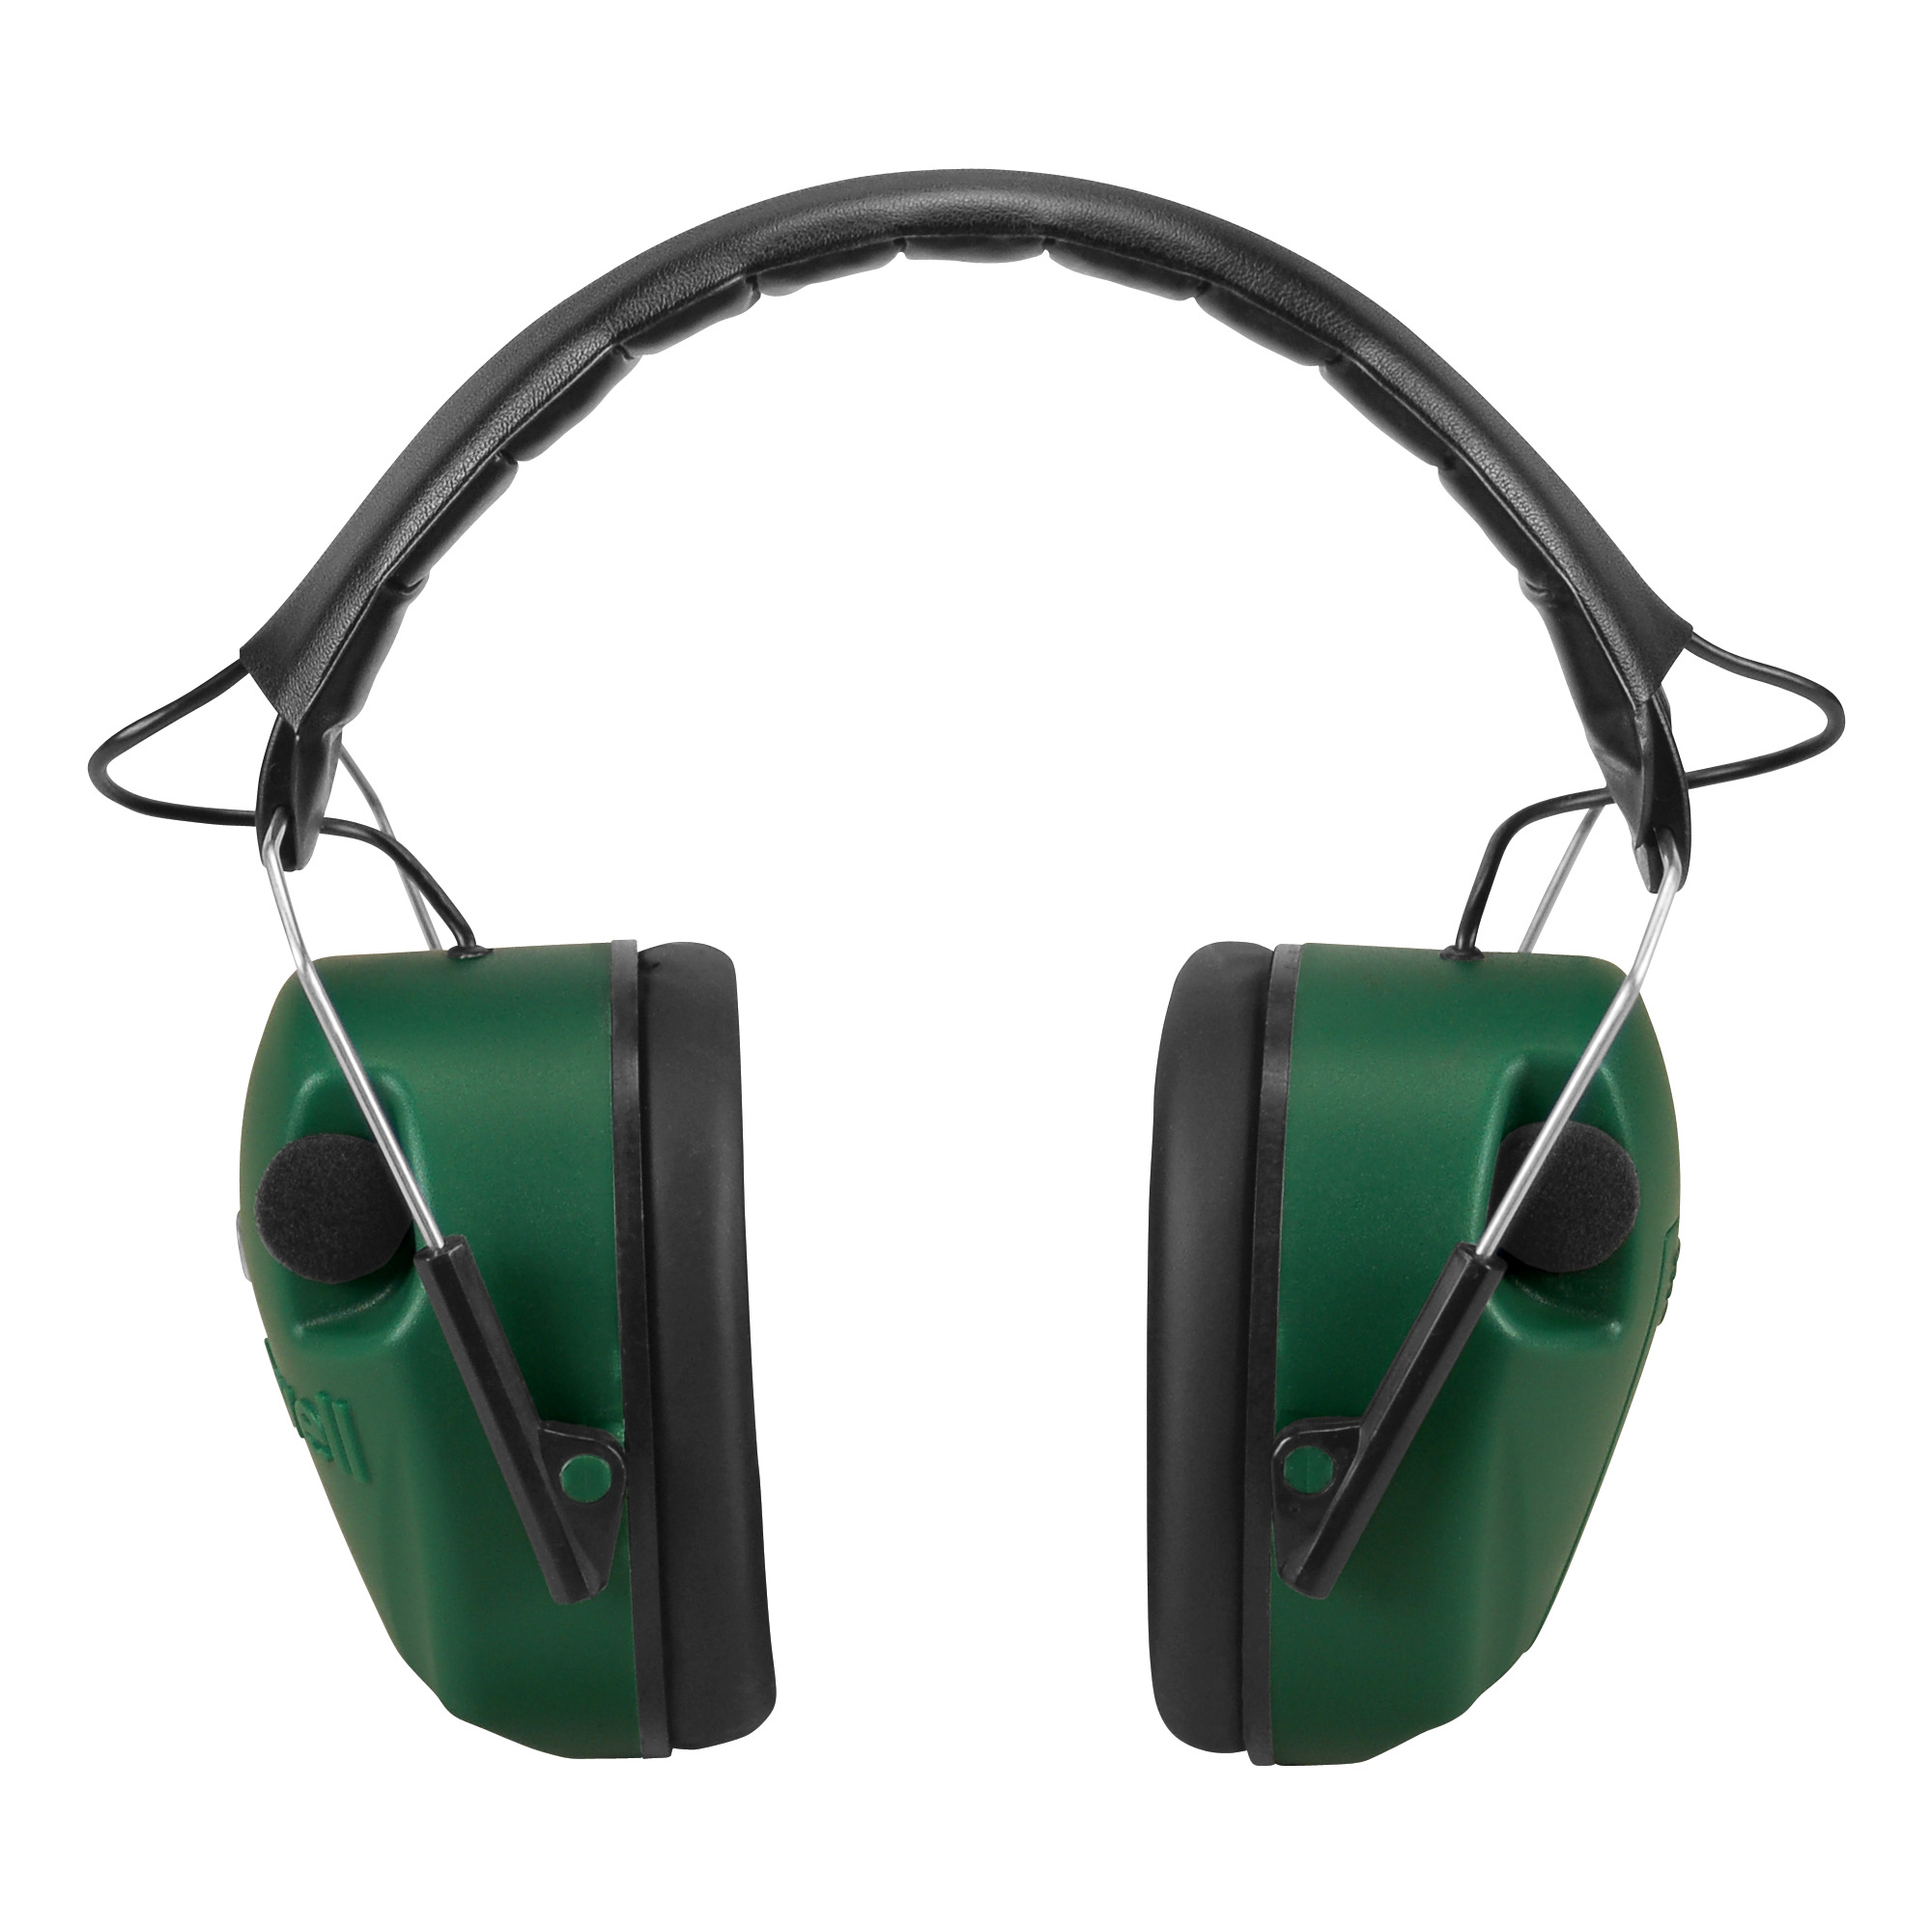 """The Caldwell E-Max hearing protection combines great circuitry with a standard ear cup for better protection. The two microphones in the E-Max amplify sounds below 85 decibels"""" which amplifies normal communication"""" range commands"""" and environmental sounds. Above 85 decibels"""" the microphones shut off to protect the shooter's hearing. Ear cup width is 1.75 inches and two AAA batteries are required but not included. Enabled with one stereo microphone in each cup"""" the user can localize sound from all directions."""